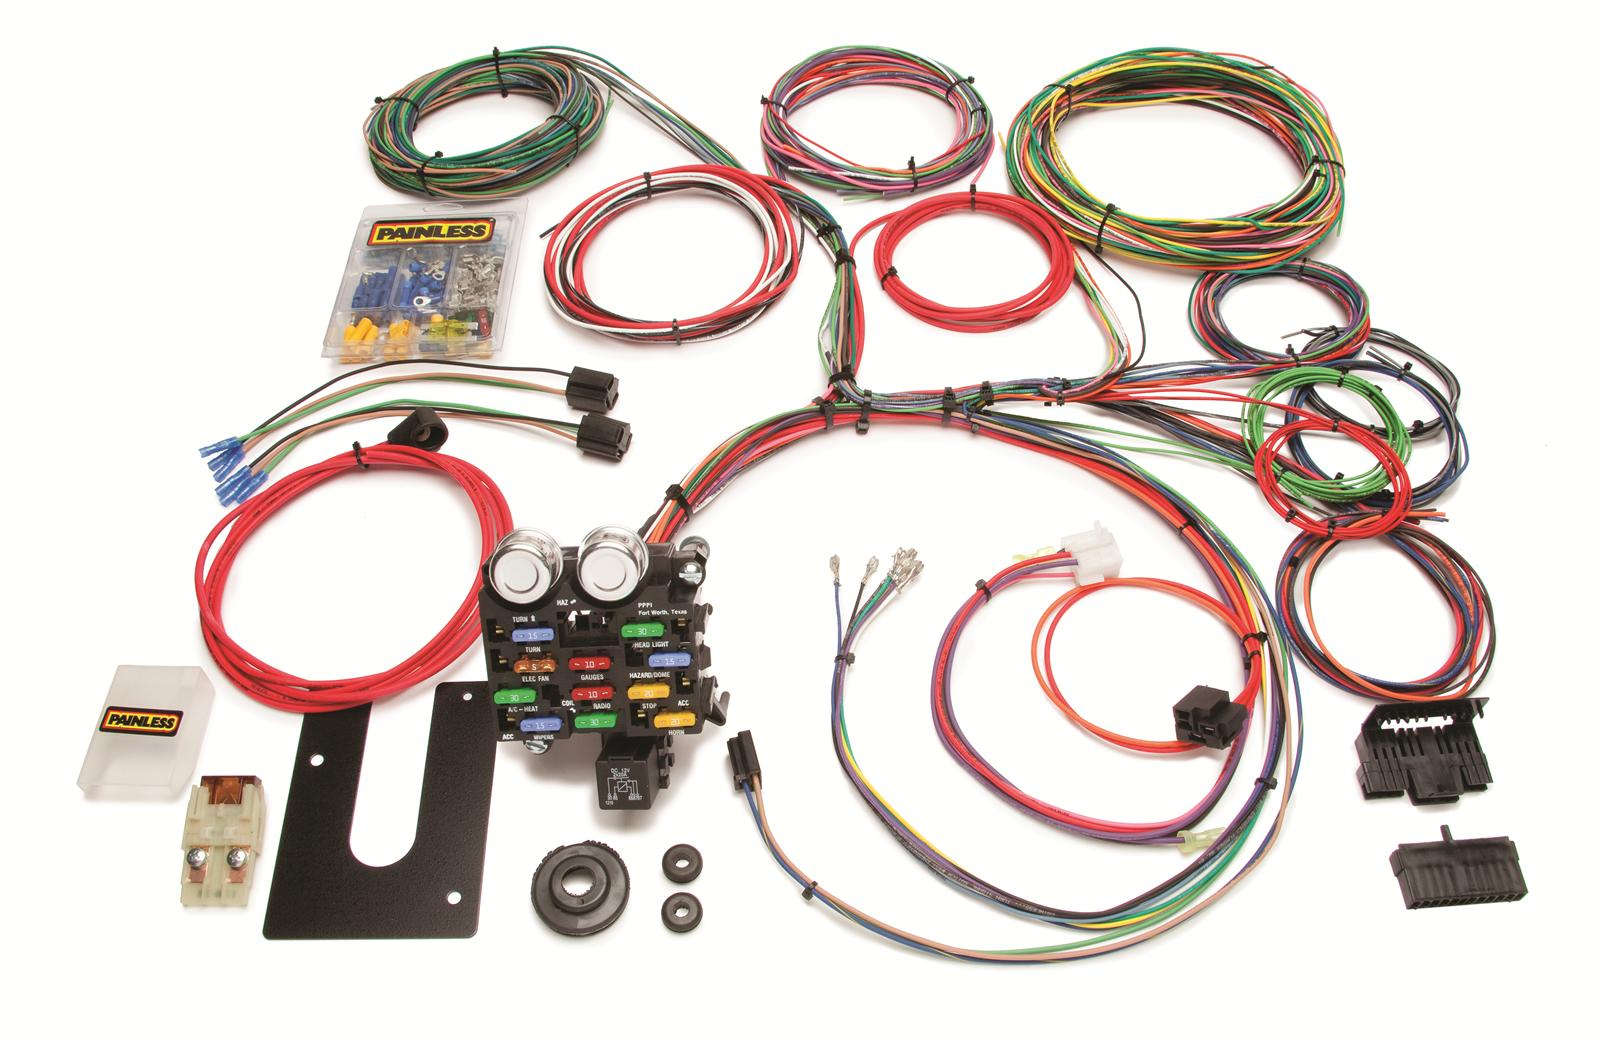 hight resolution of painless performance 21 circuit universal harnesses 10101 free shipping on orders over 99 at summit racing